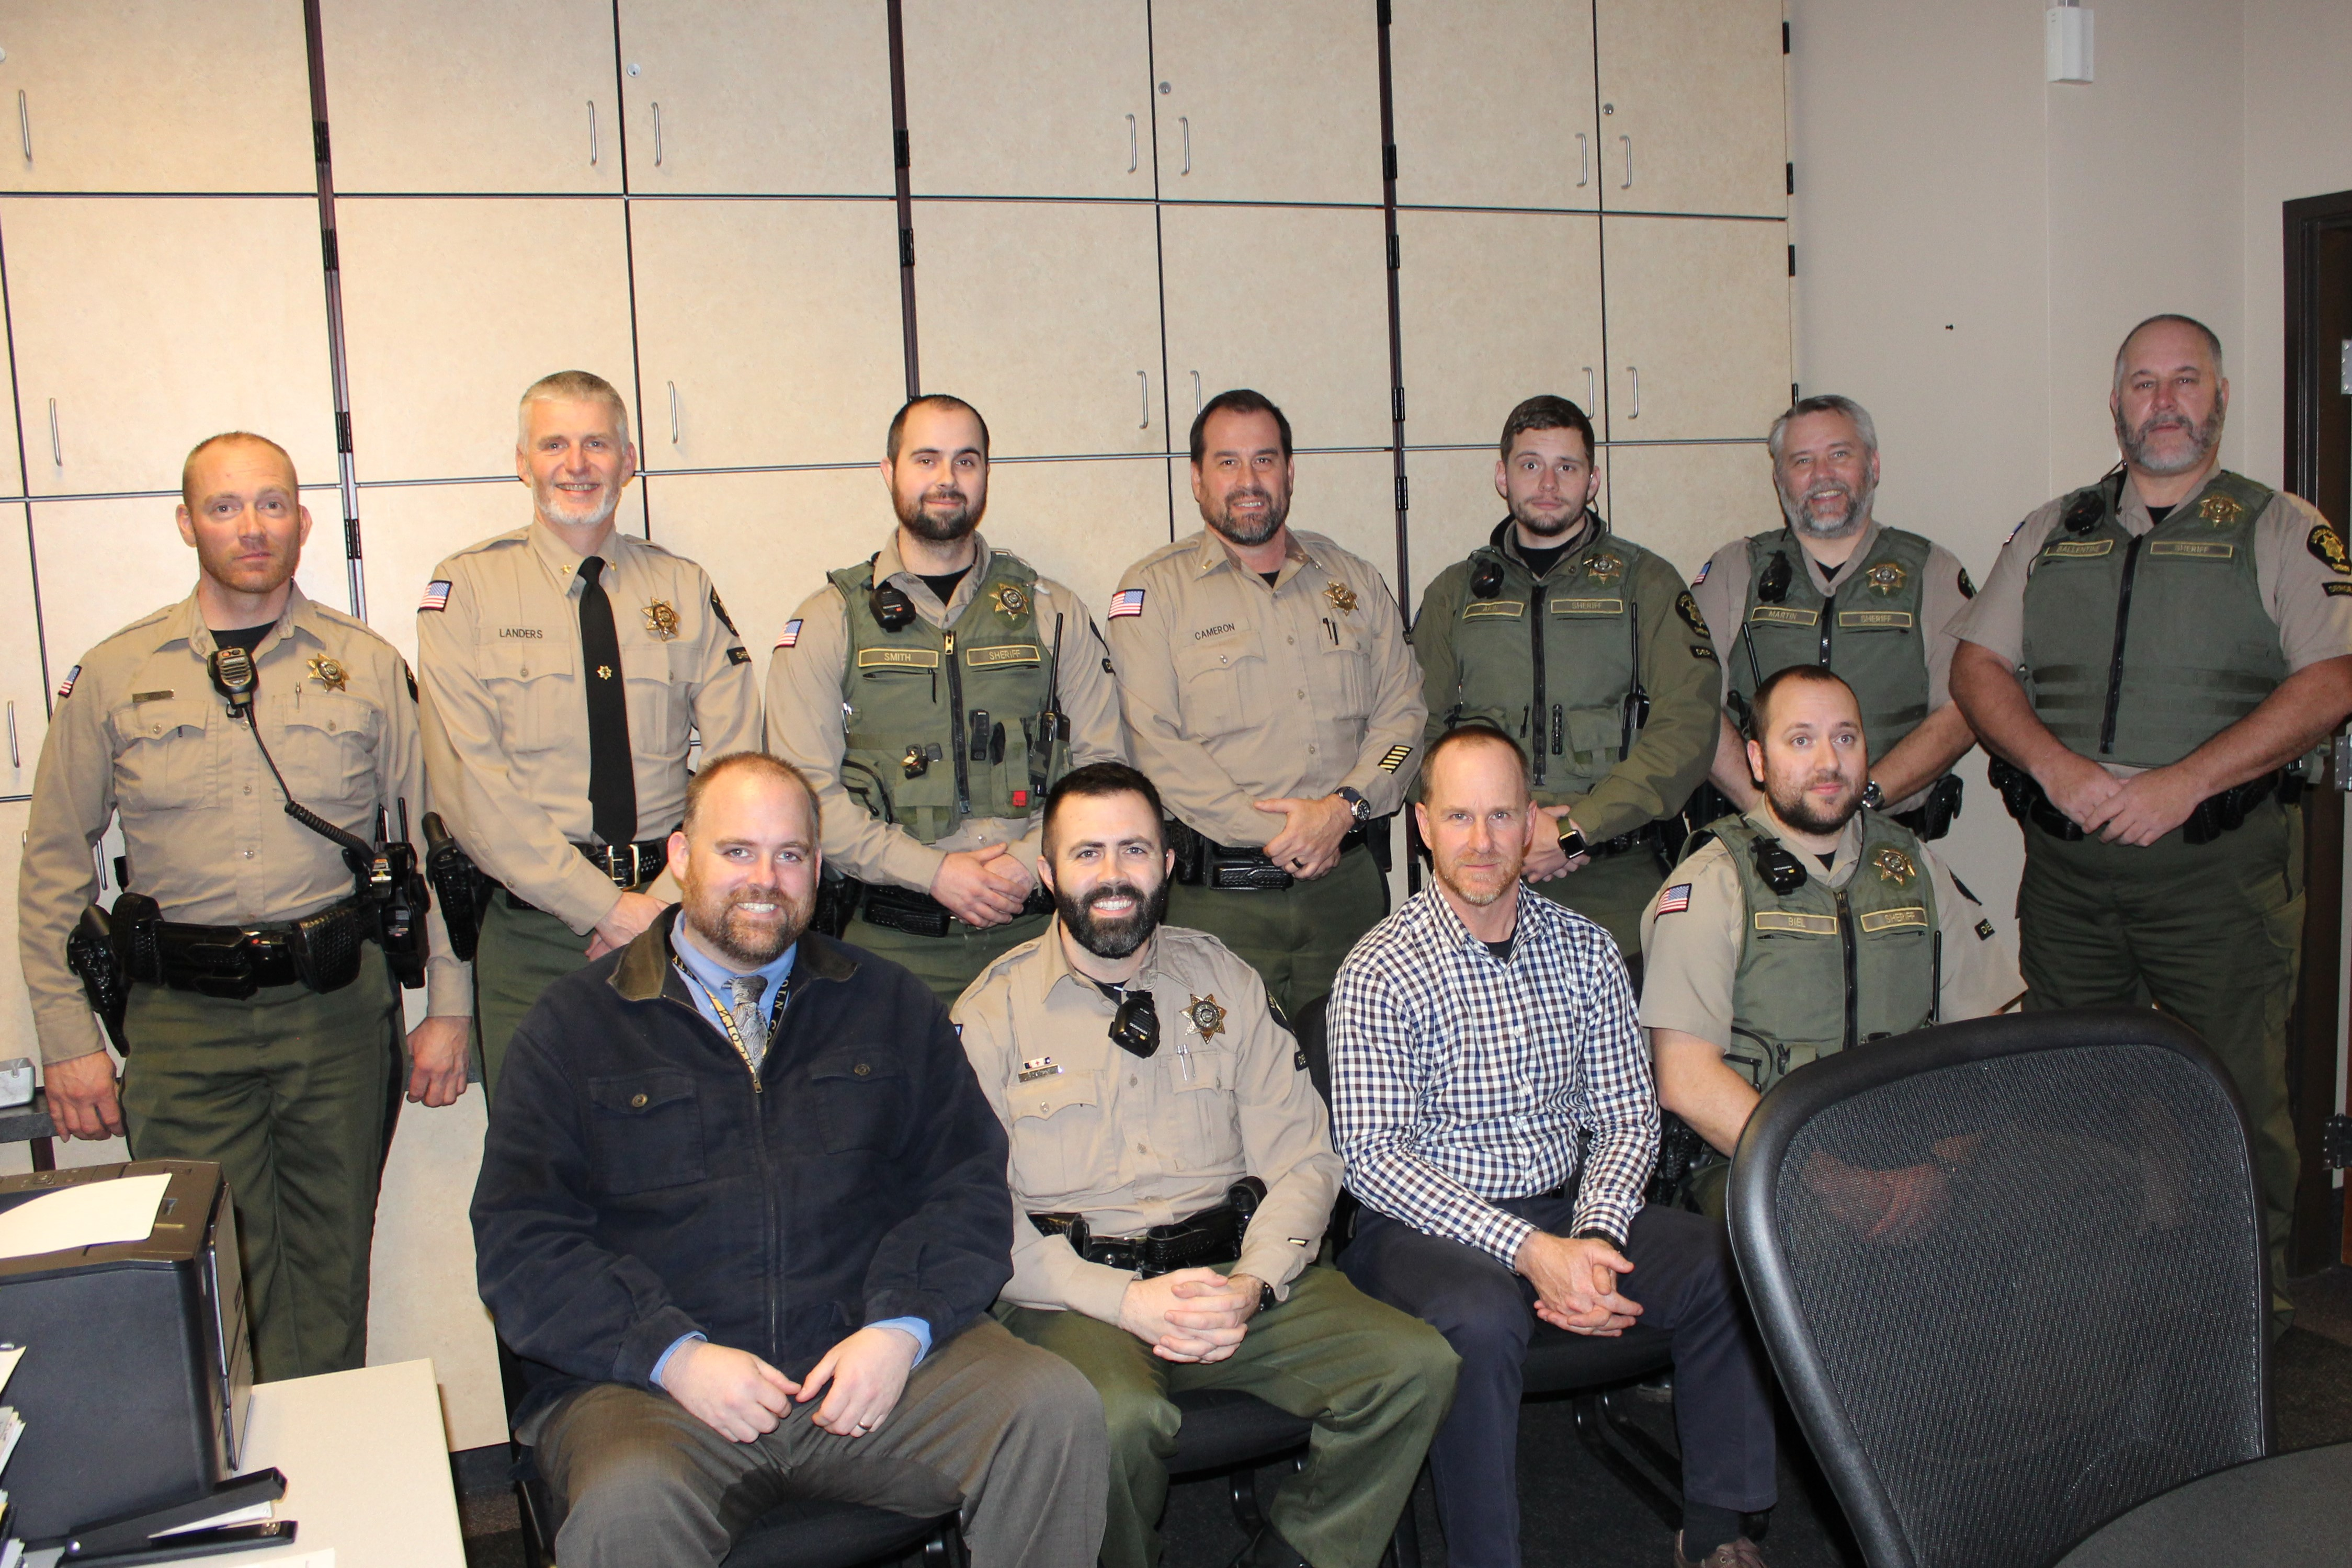 Lincoln County Sheriff's Office No Shave November 2019